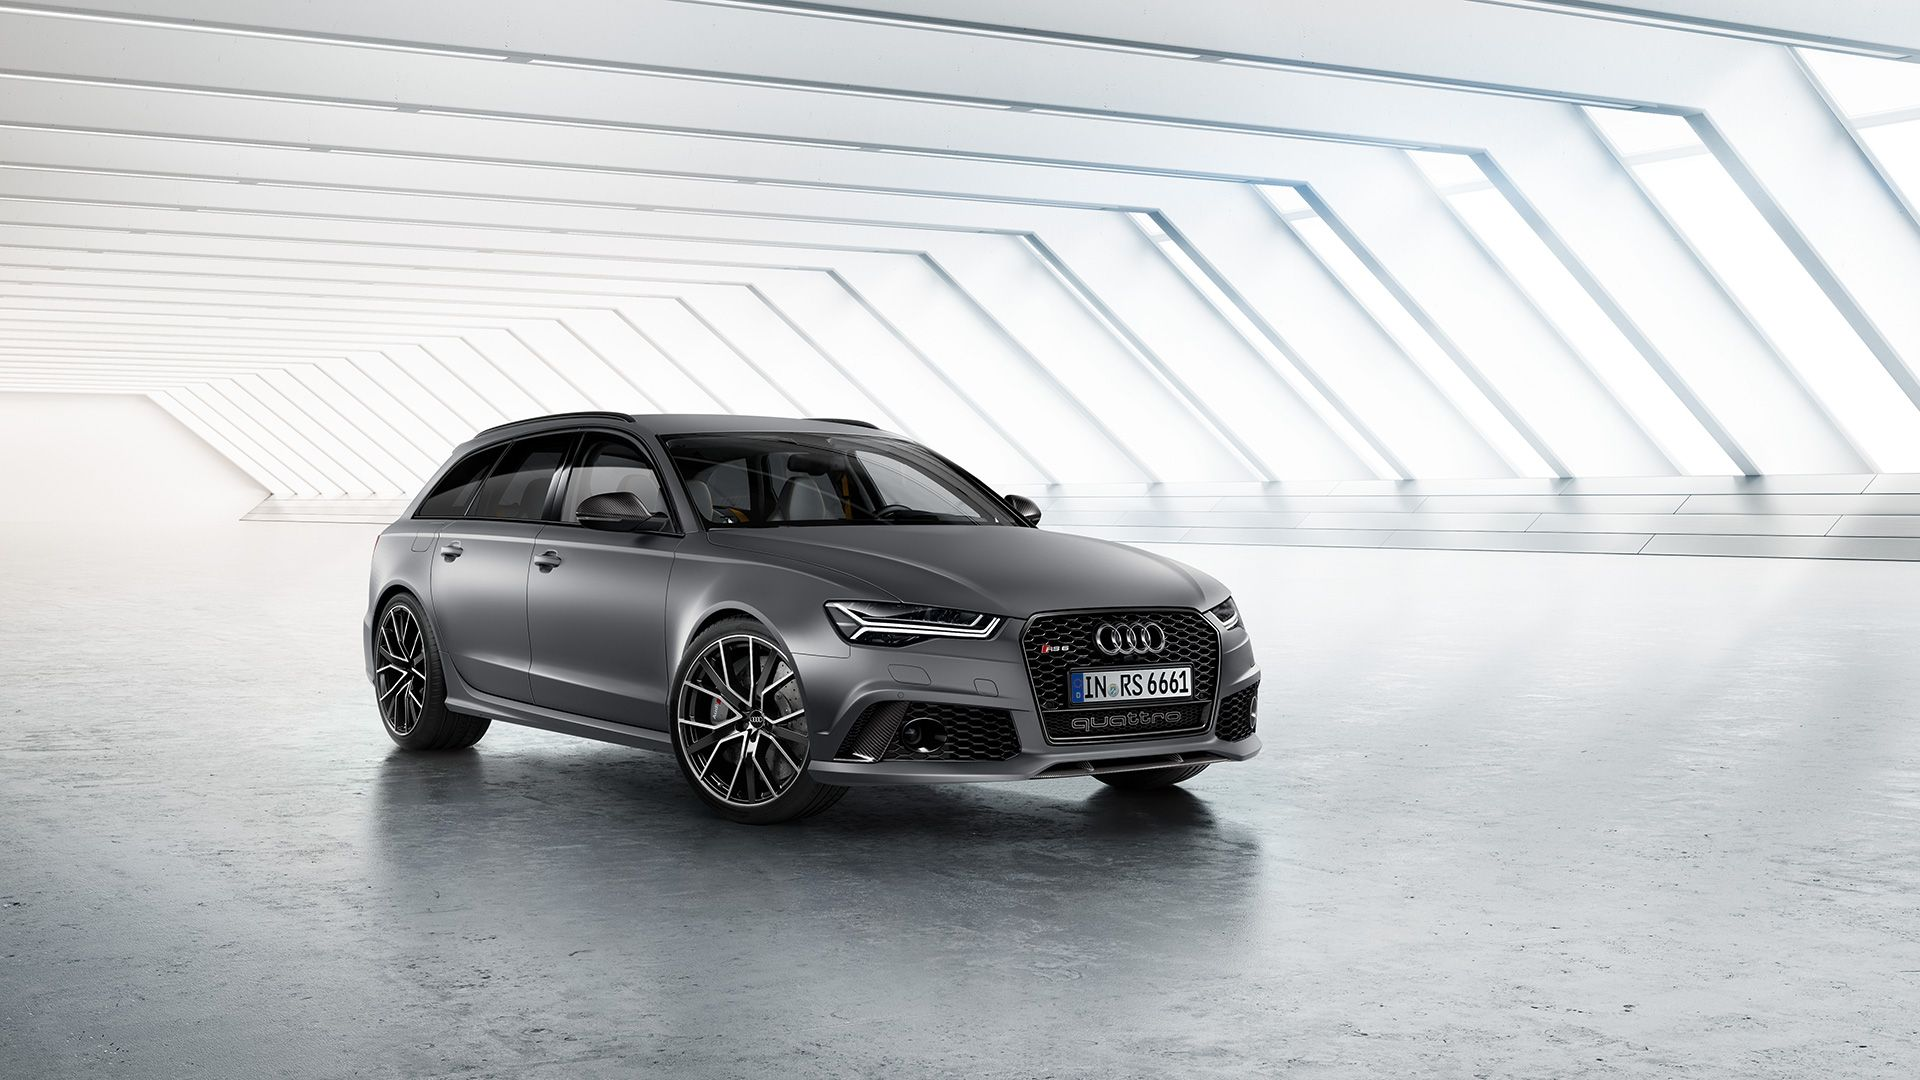 You Can Now Buy Prince Harry's Audi RS6 Avant For US$92,000